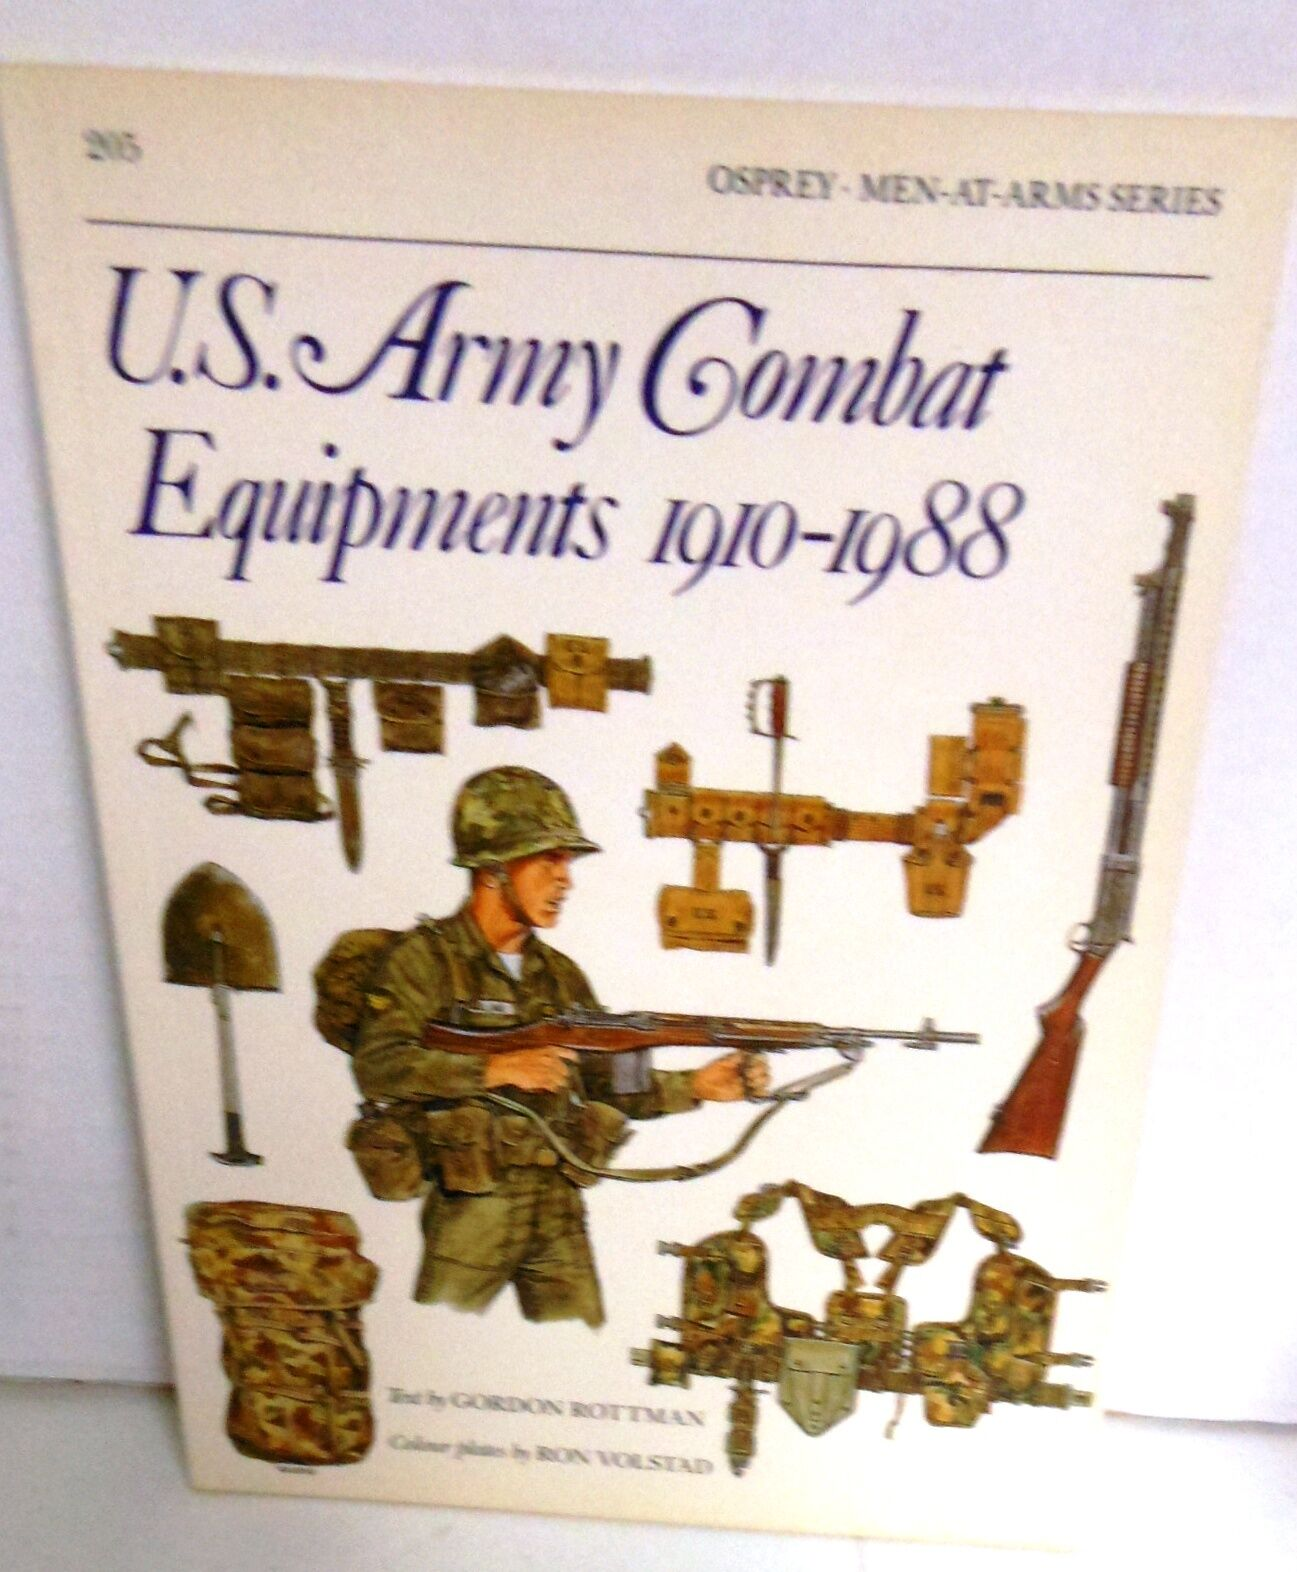 U.S. Army Combat Equipments 1910-1988 (Men-at-Arms, Volume 205)